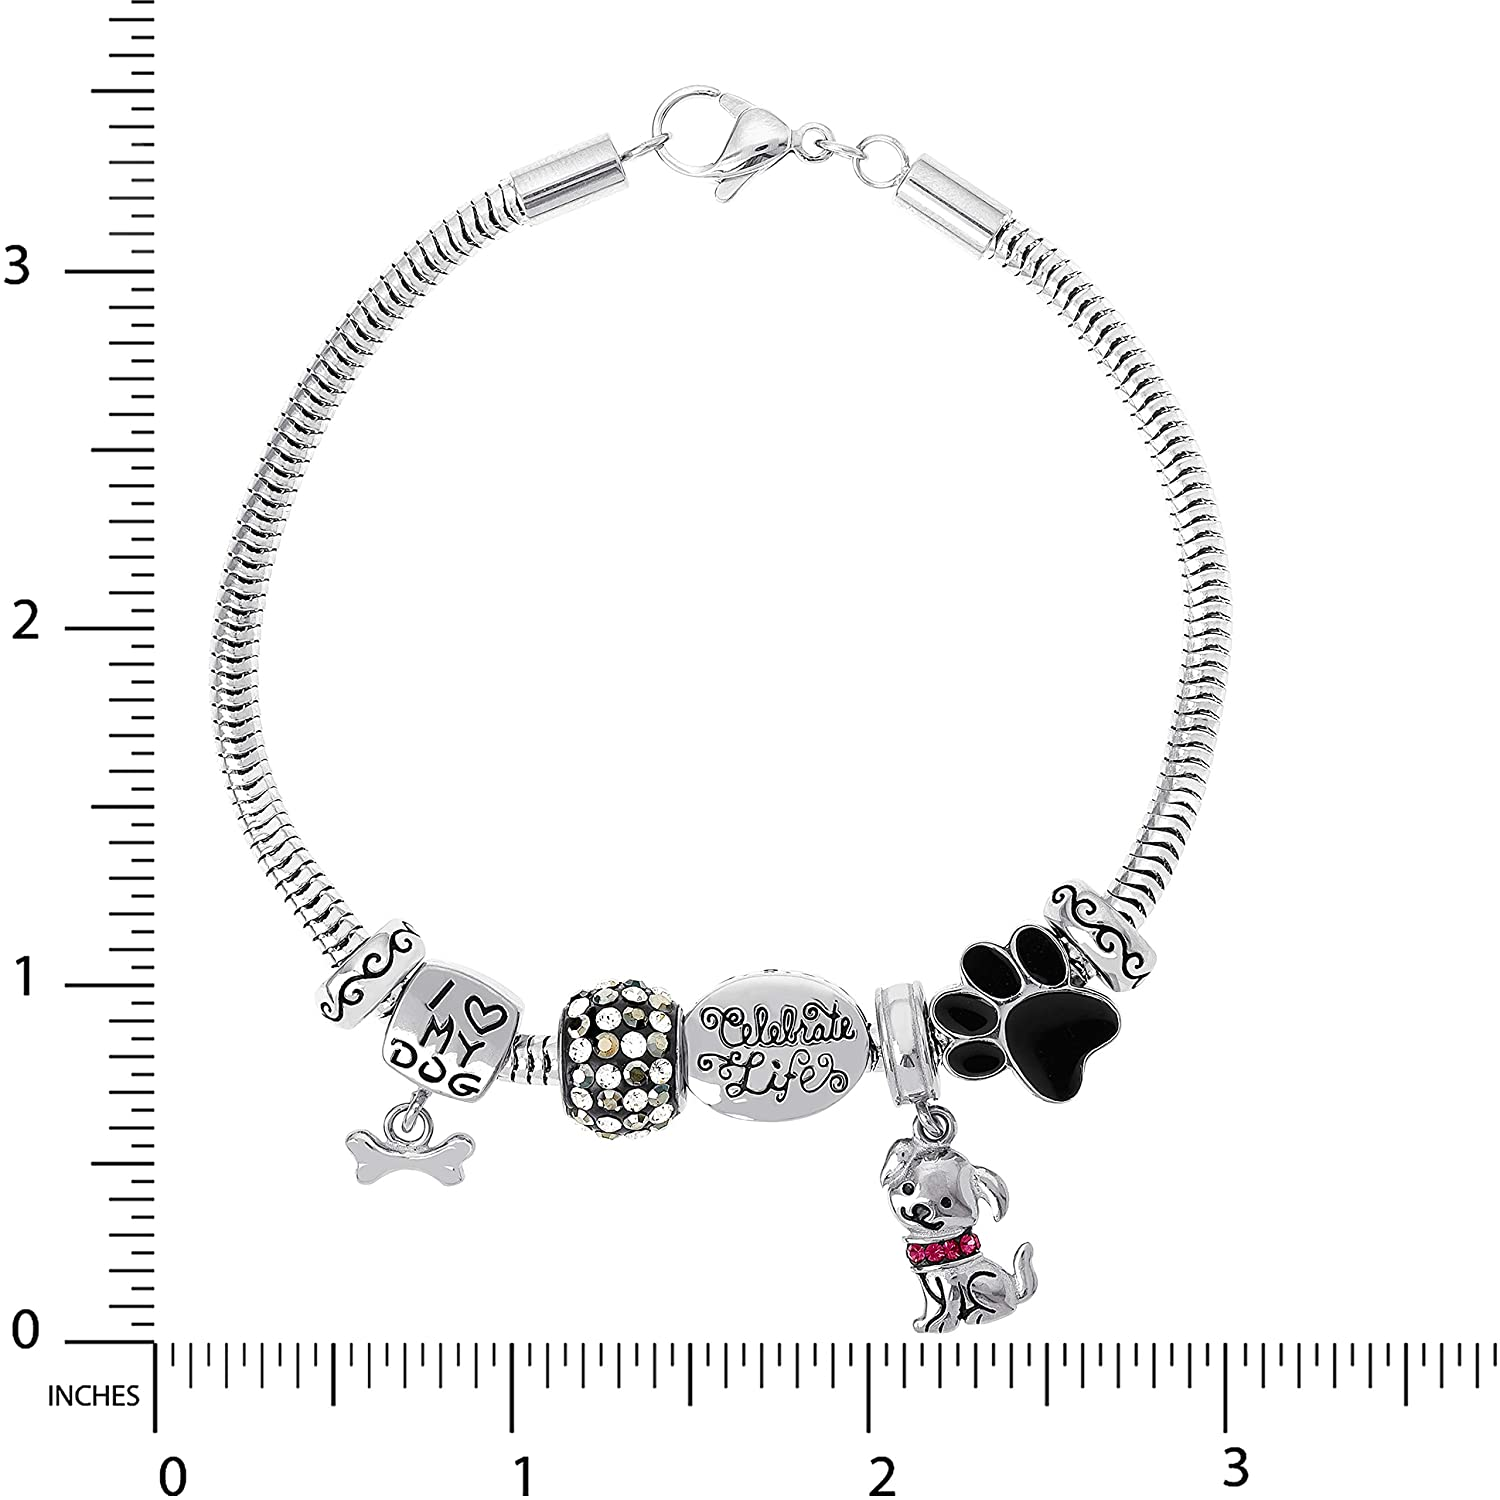 Connections from Hallmark Stainless Steel Limited Edition Dog Bracelet Charm Pack Jacmel B600207L-77NJ